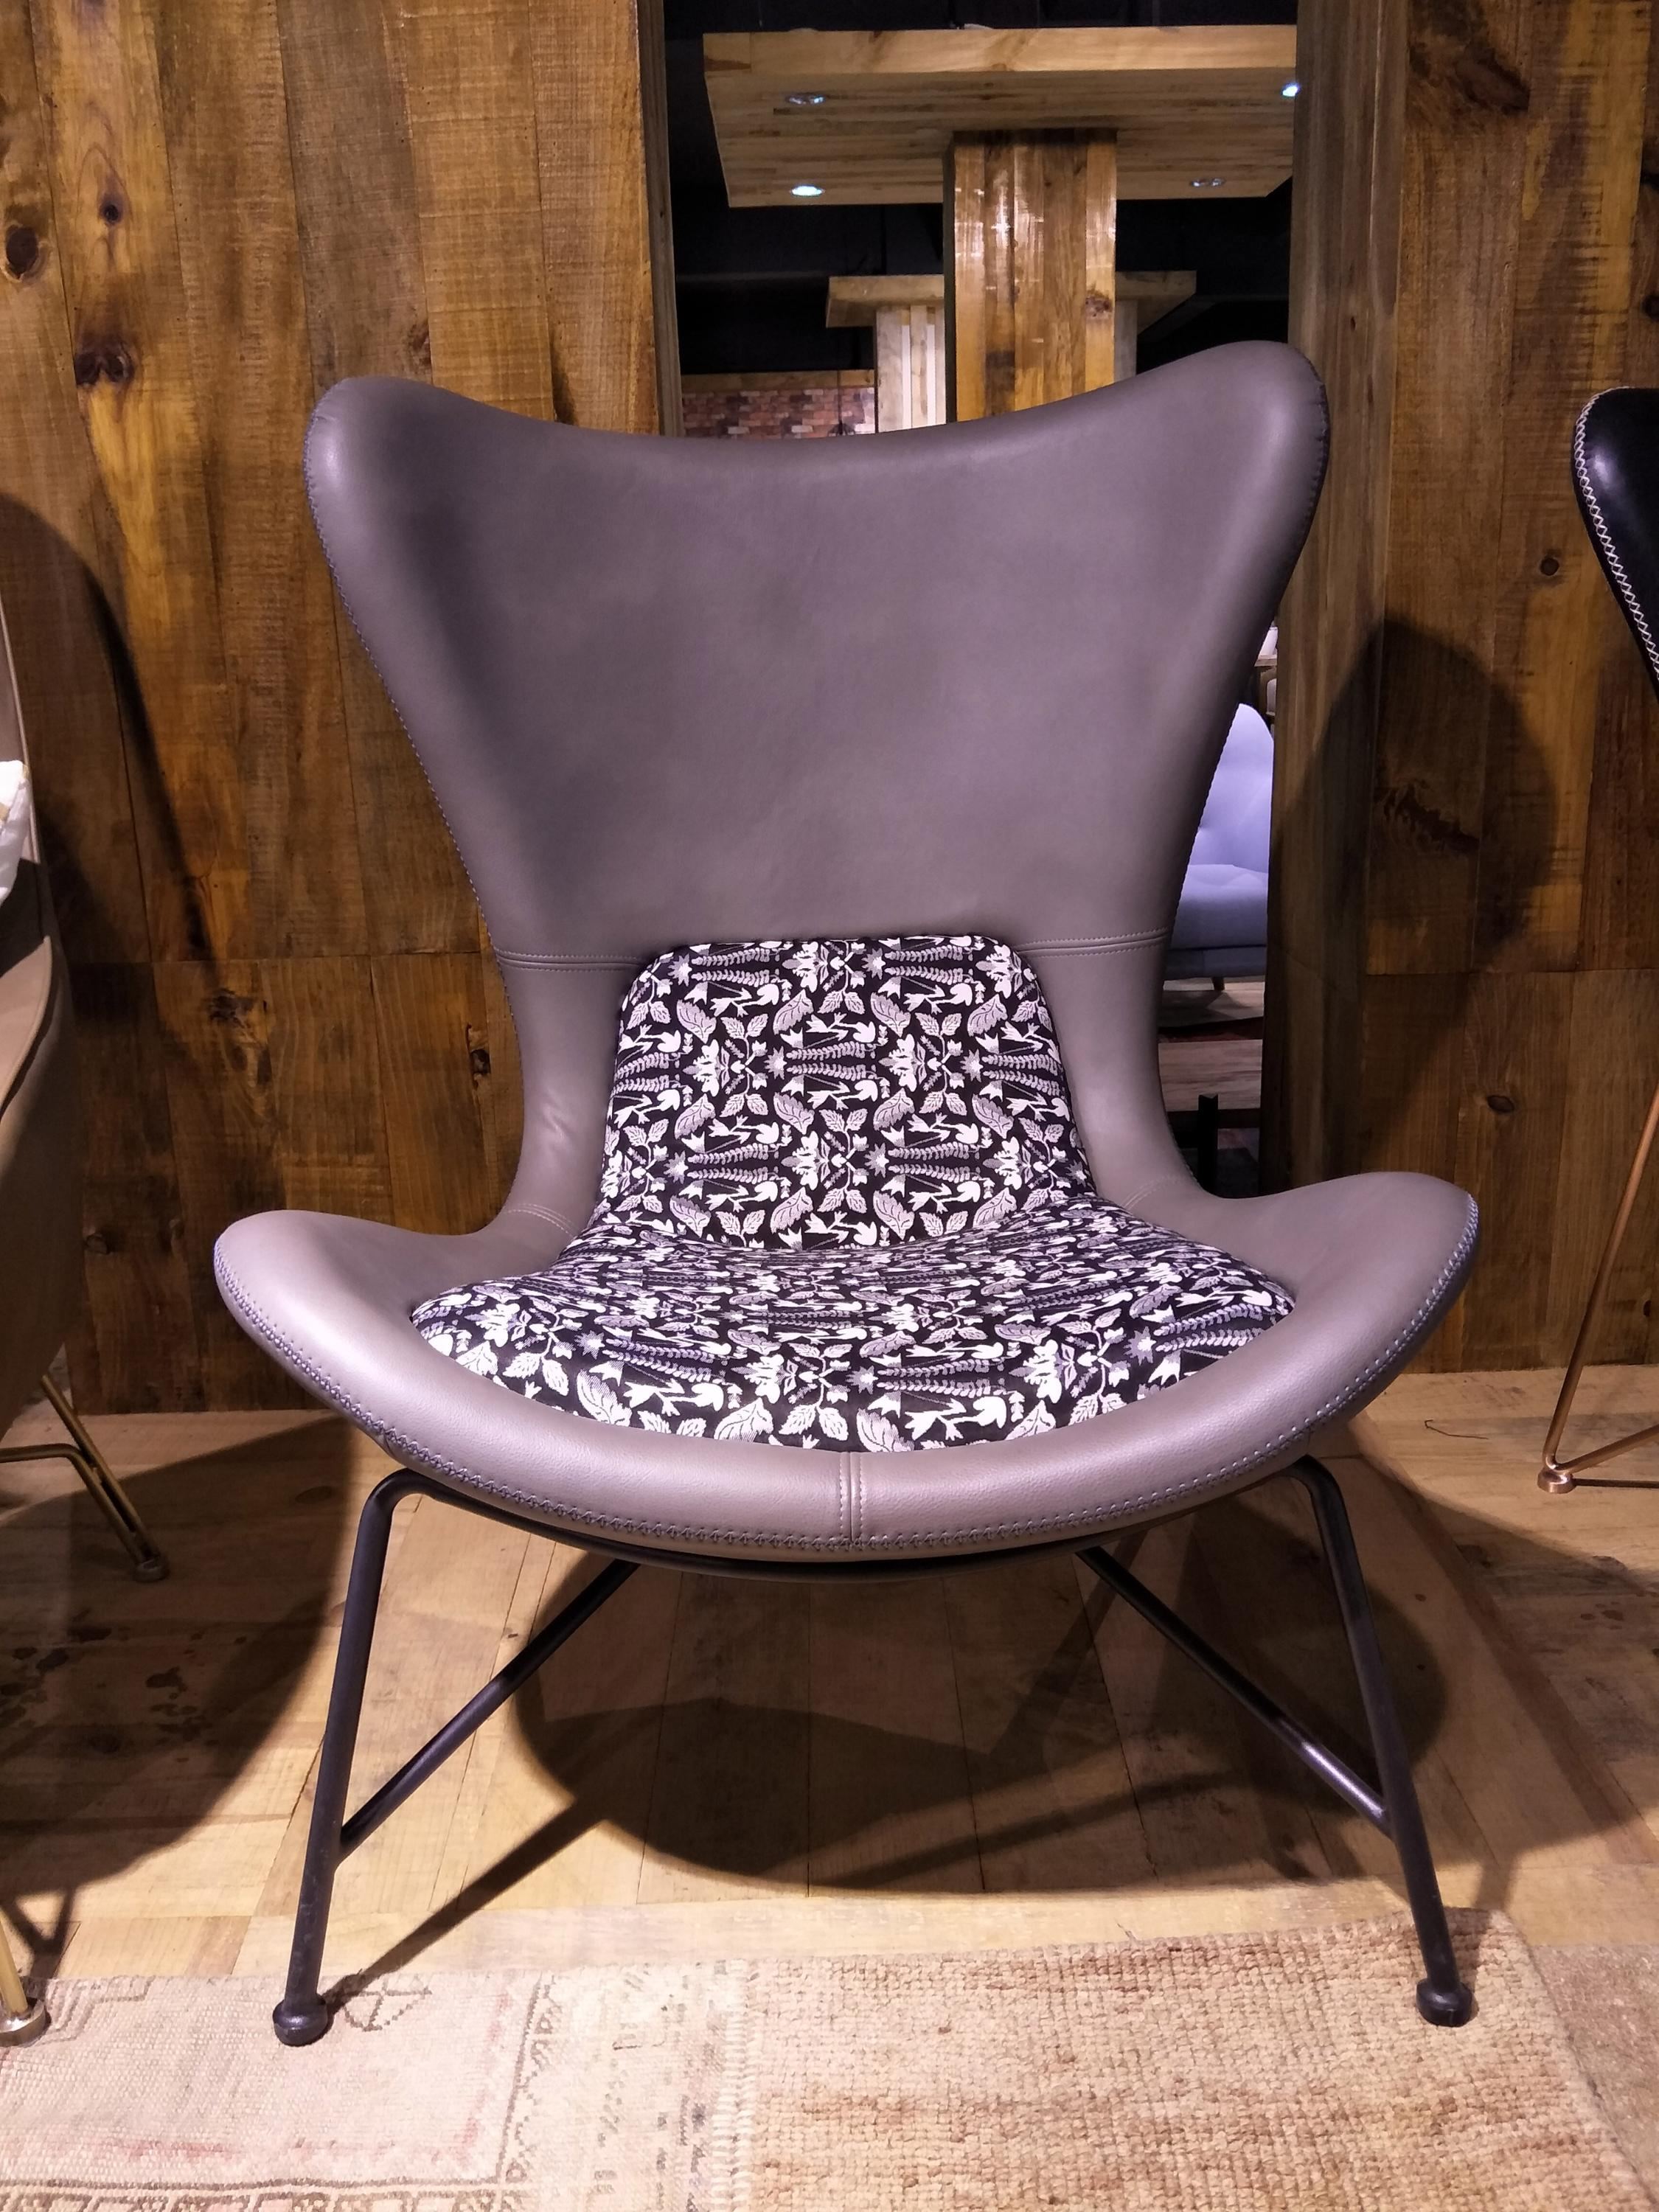 Acapulco chair living room - Waterproof Fabric Tiffany Chair Living Room Acapulco Chair Matel Base Aviator Chair With Oak Legs